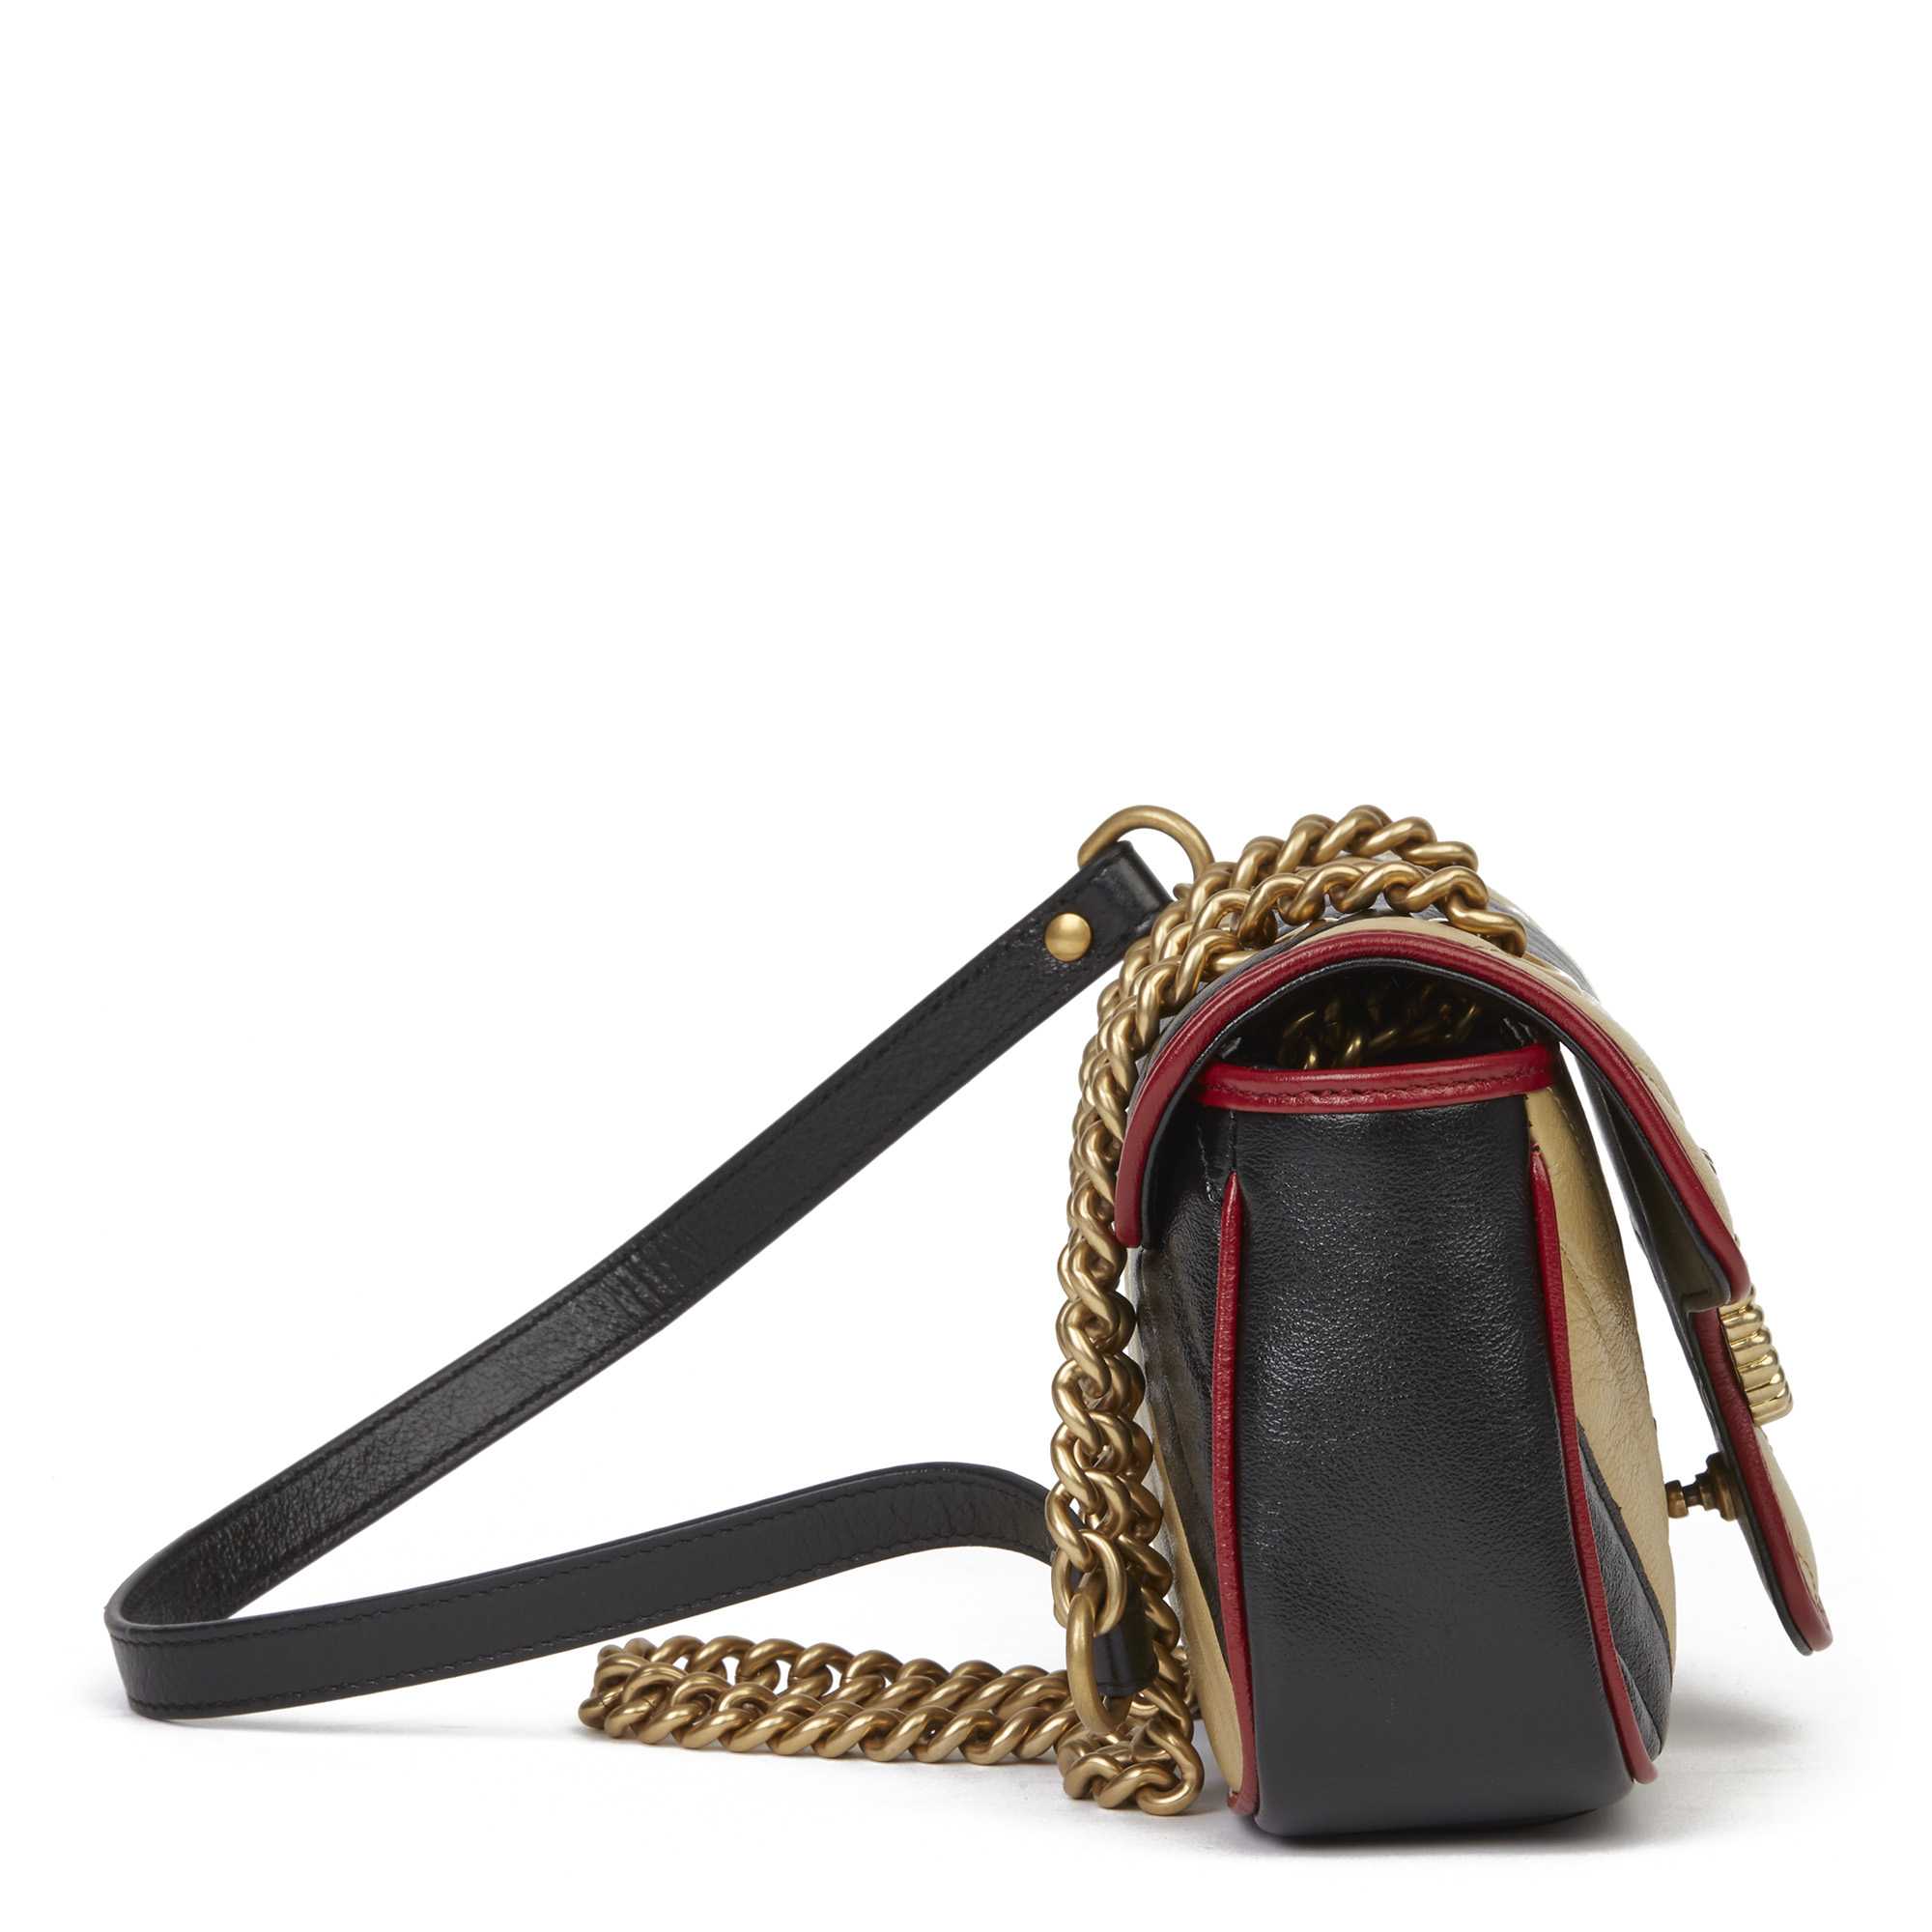 Gucci Black, Cream & Red Diagonal Quilted Aged Calfskin Leather Mini Marmont - Image 12 of 12